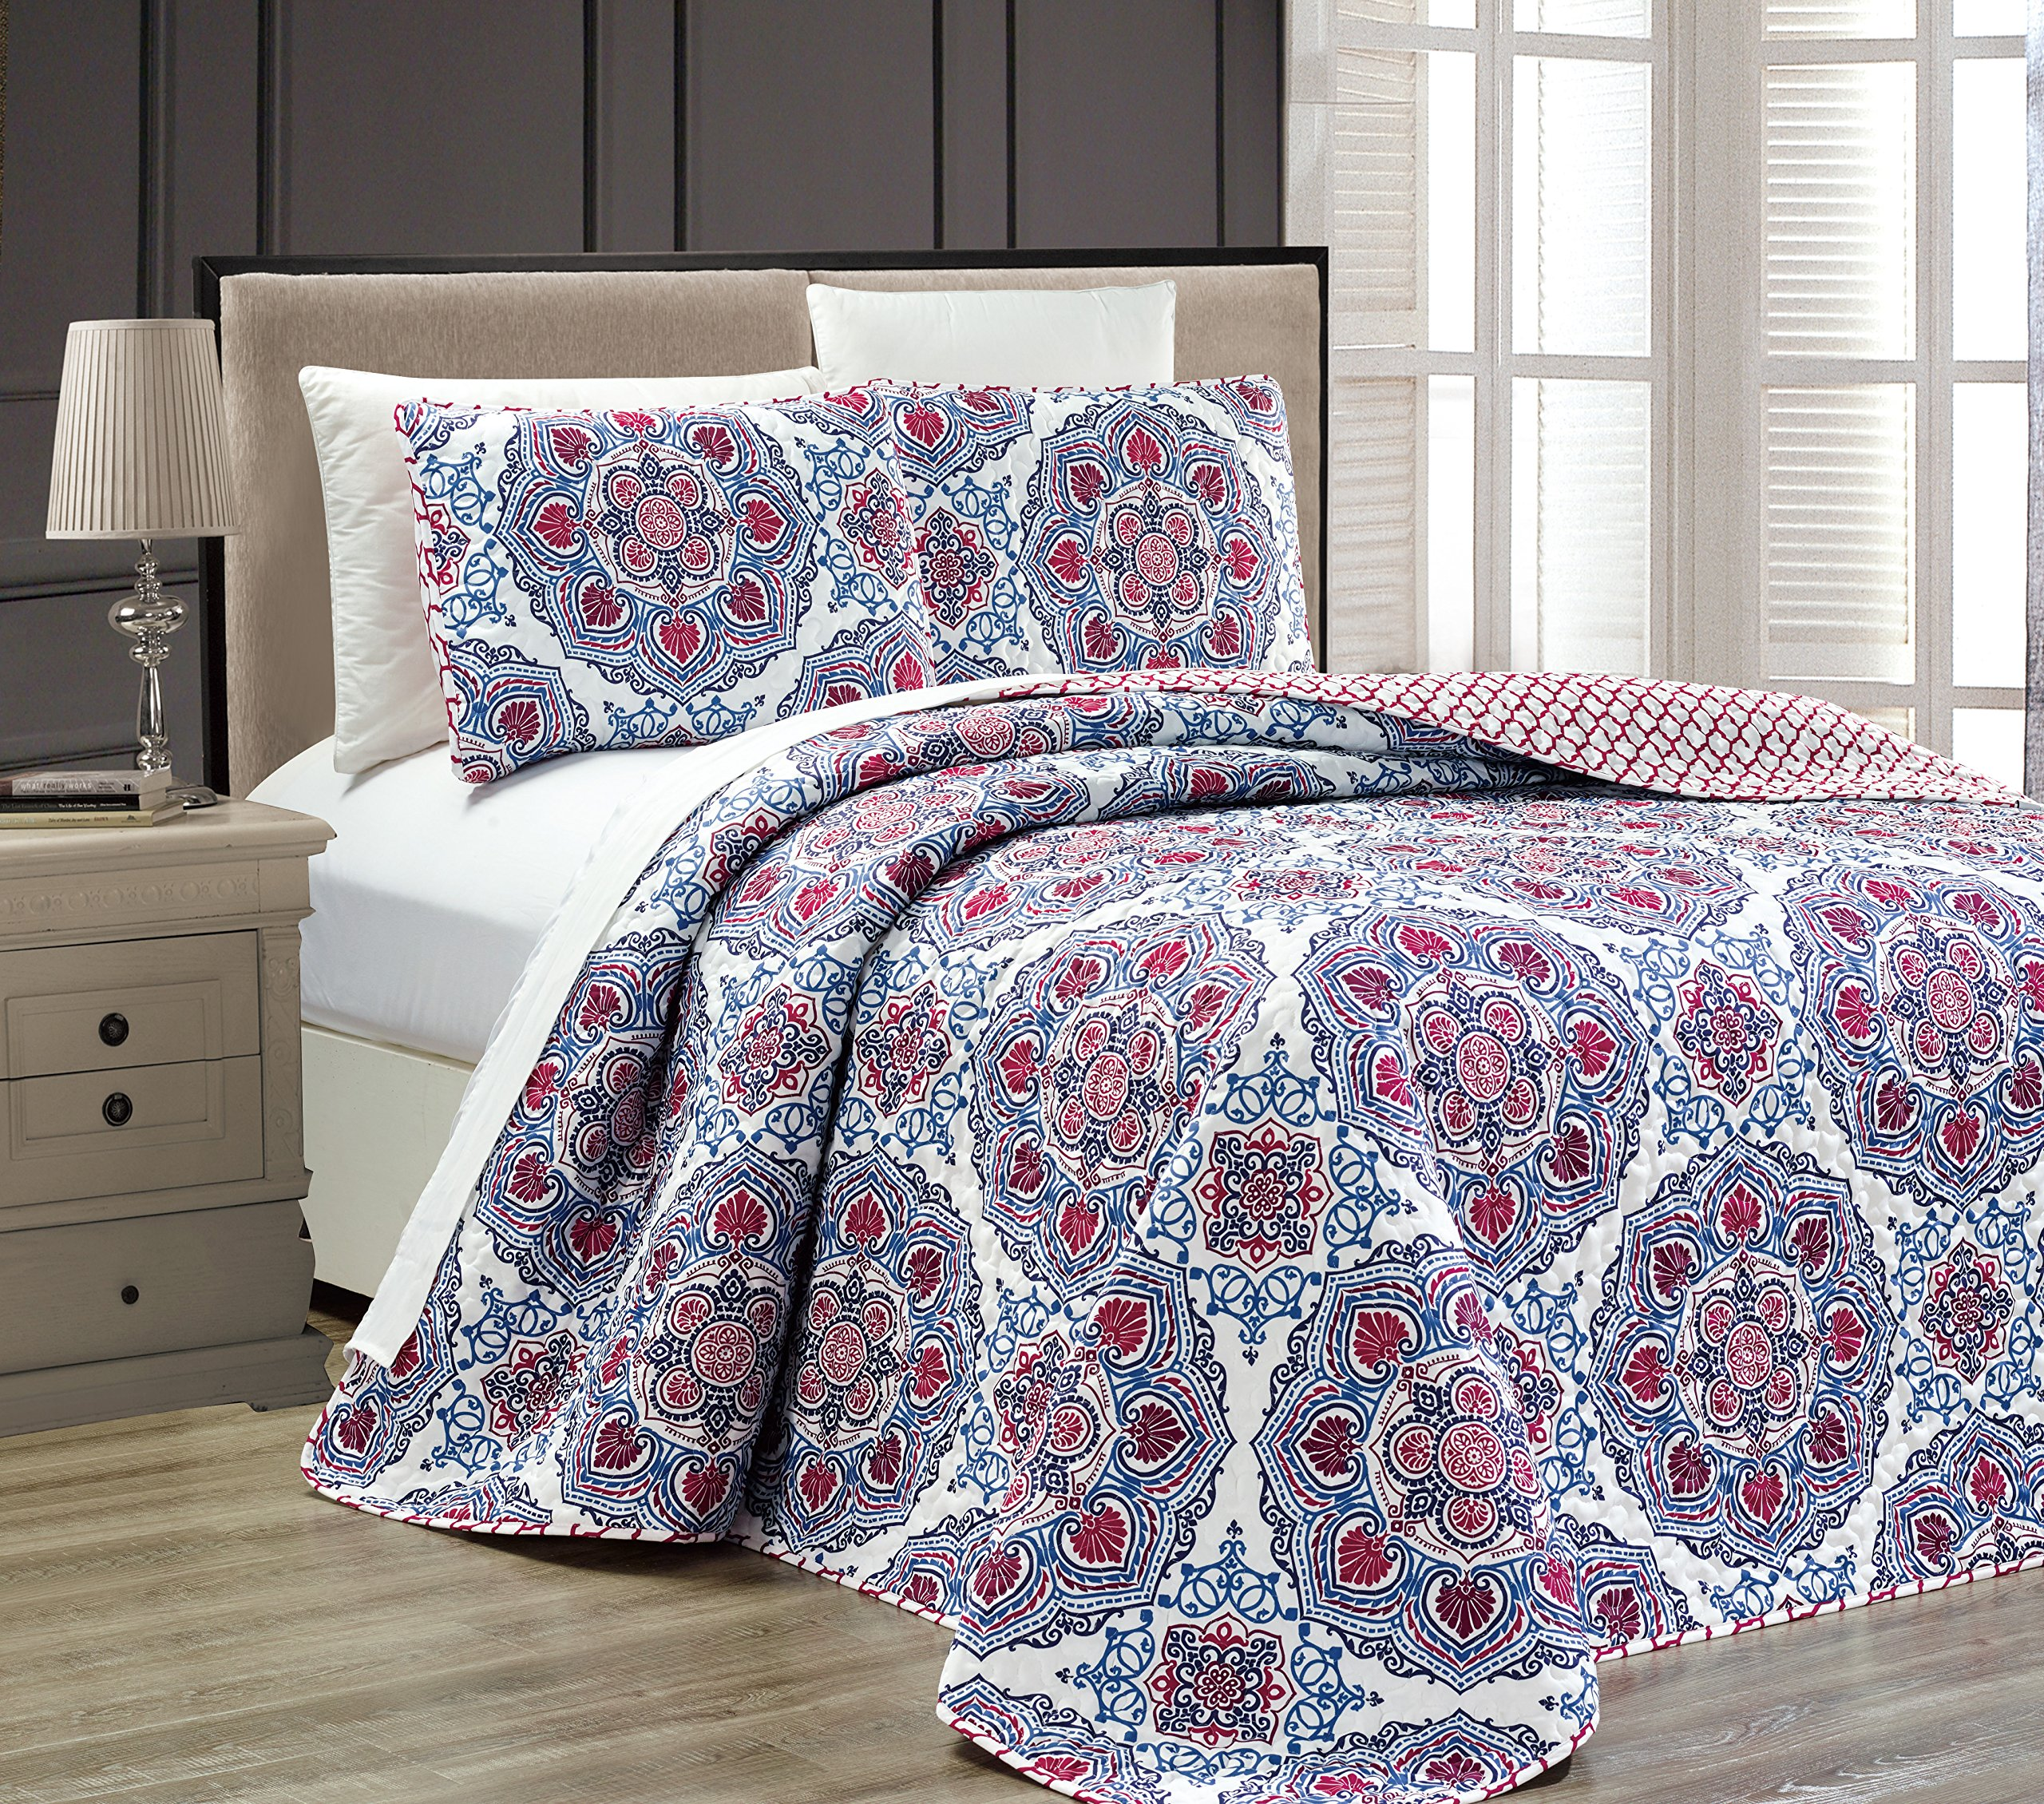 Fancy Collection 3 pc Bedspread Bed Cover Modern Reversible White Red Burgundy Navy Blue Light Blue New # Linda Red (Full/Queen) by Fancy Linen (Image #1)